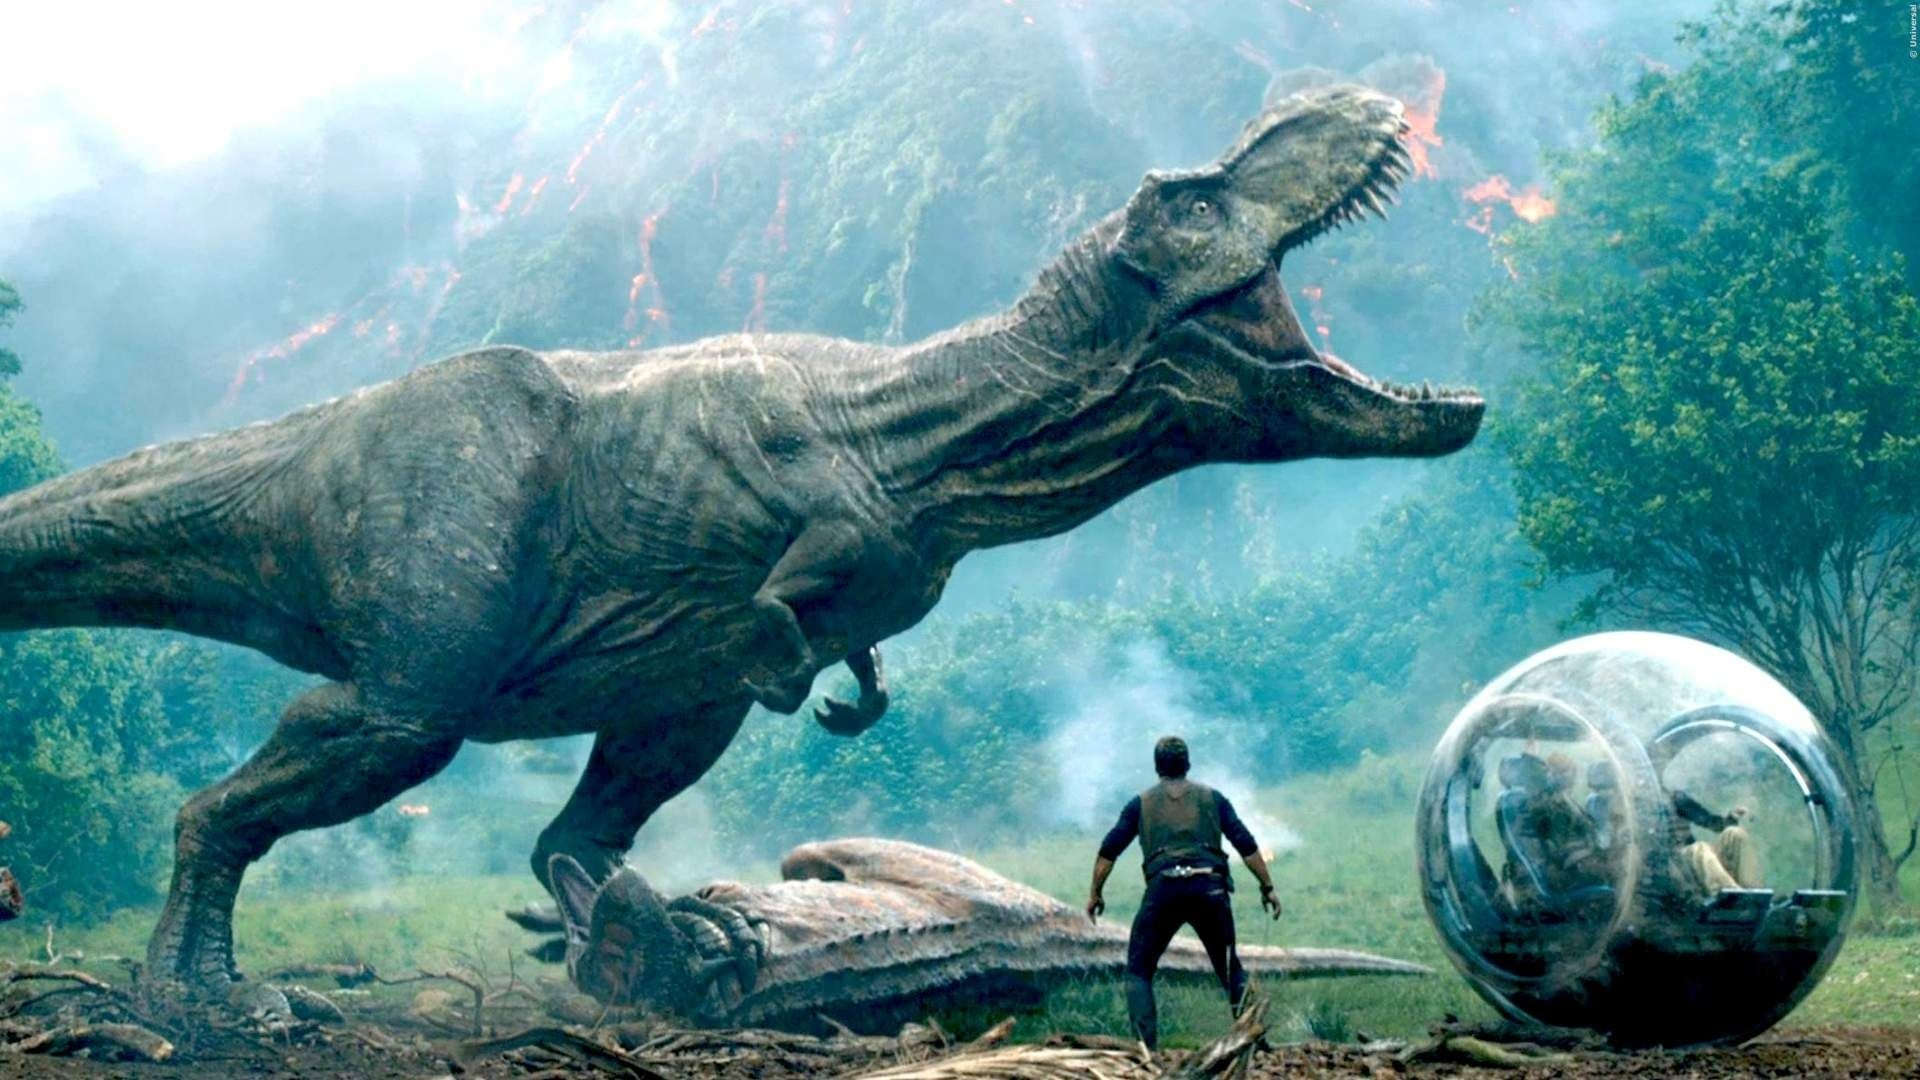 Jurassic World Fallen Kingdom Review: Best JP Movie Ever | IvanYolo